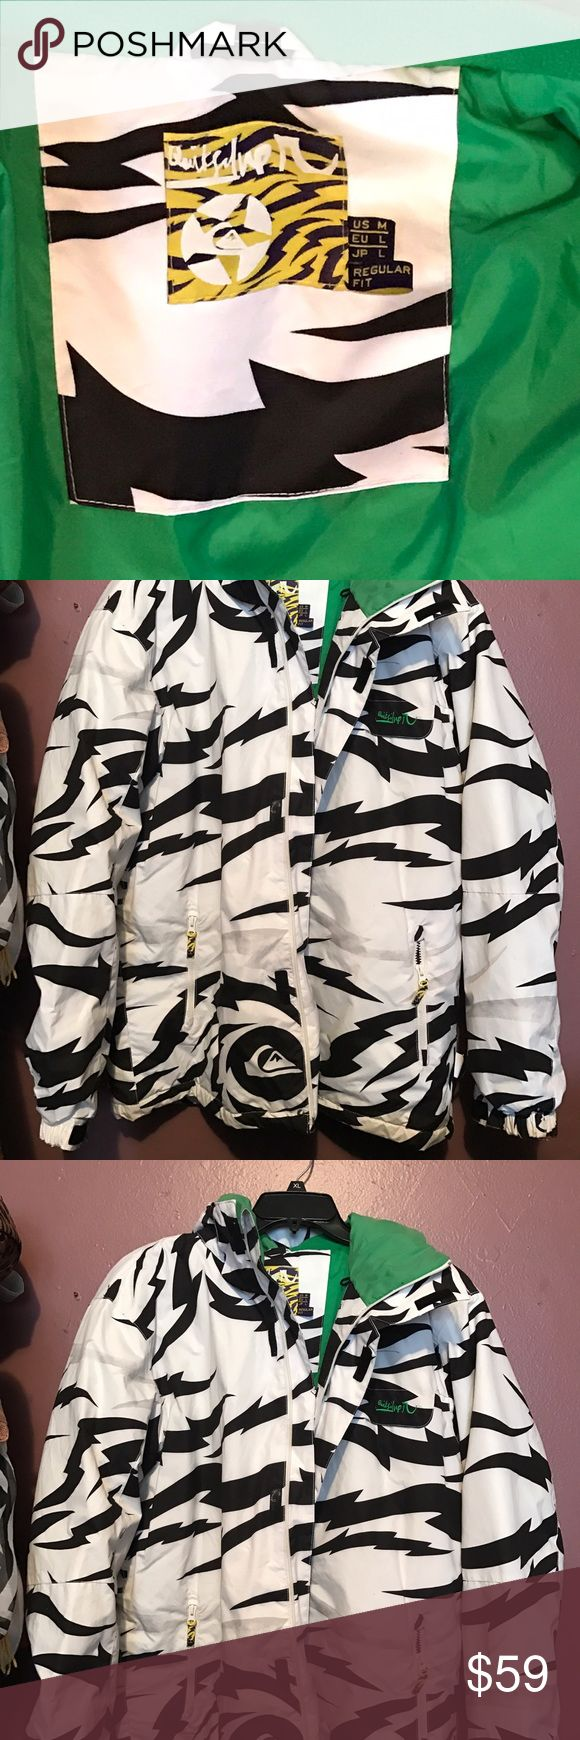 Men's quicksilver snowboarding jacket Never worn! New without tags! Size men's M, so it runs a little longer. Equivalent to a women's Large. Thick and warm! Waterproof outer shell with hood. quicksilver Jackets & Coats Puffers